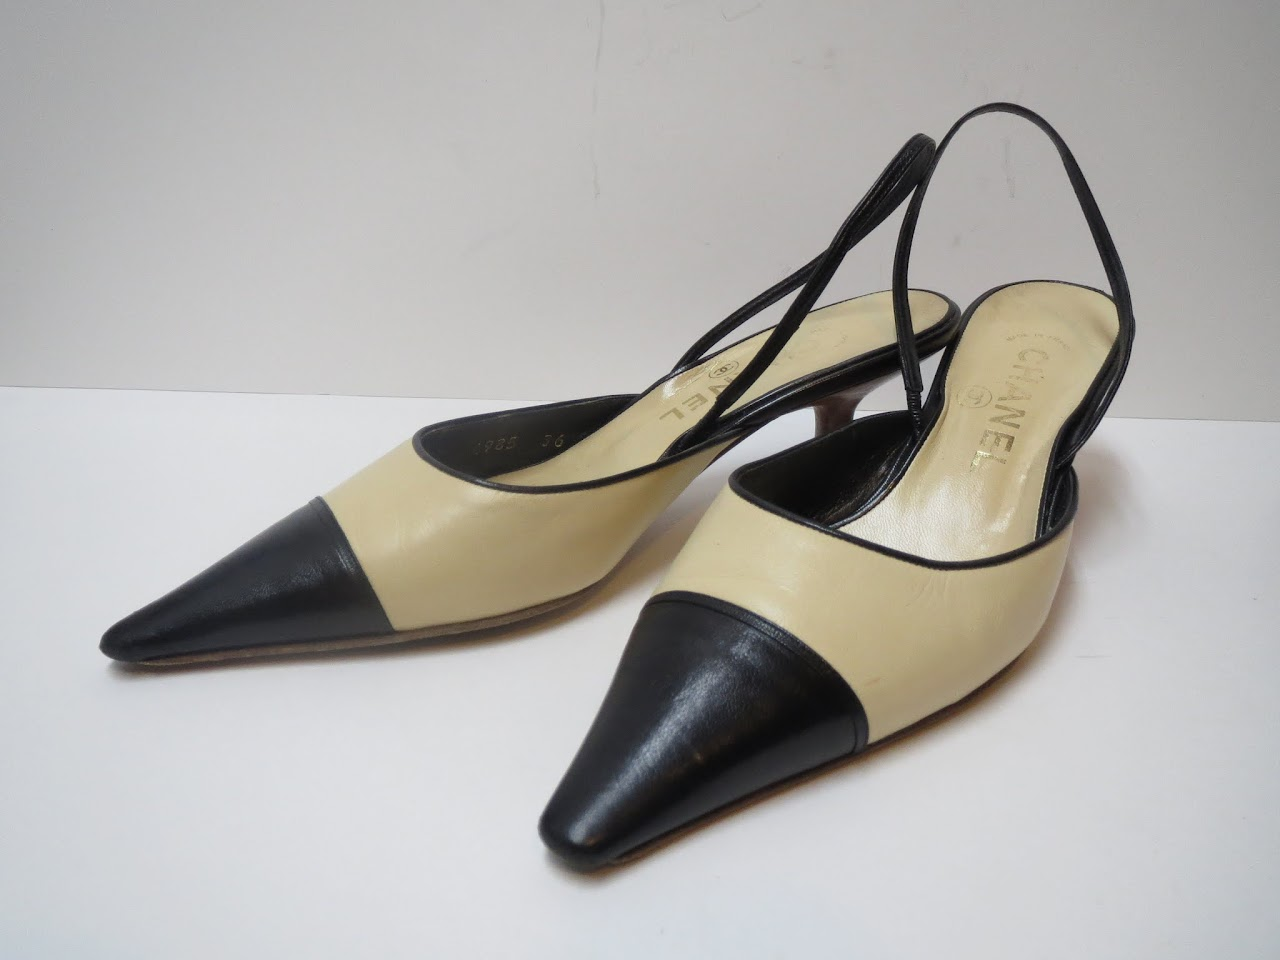 Vintage Chanel Colorblock Kitten Heels